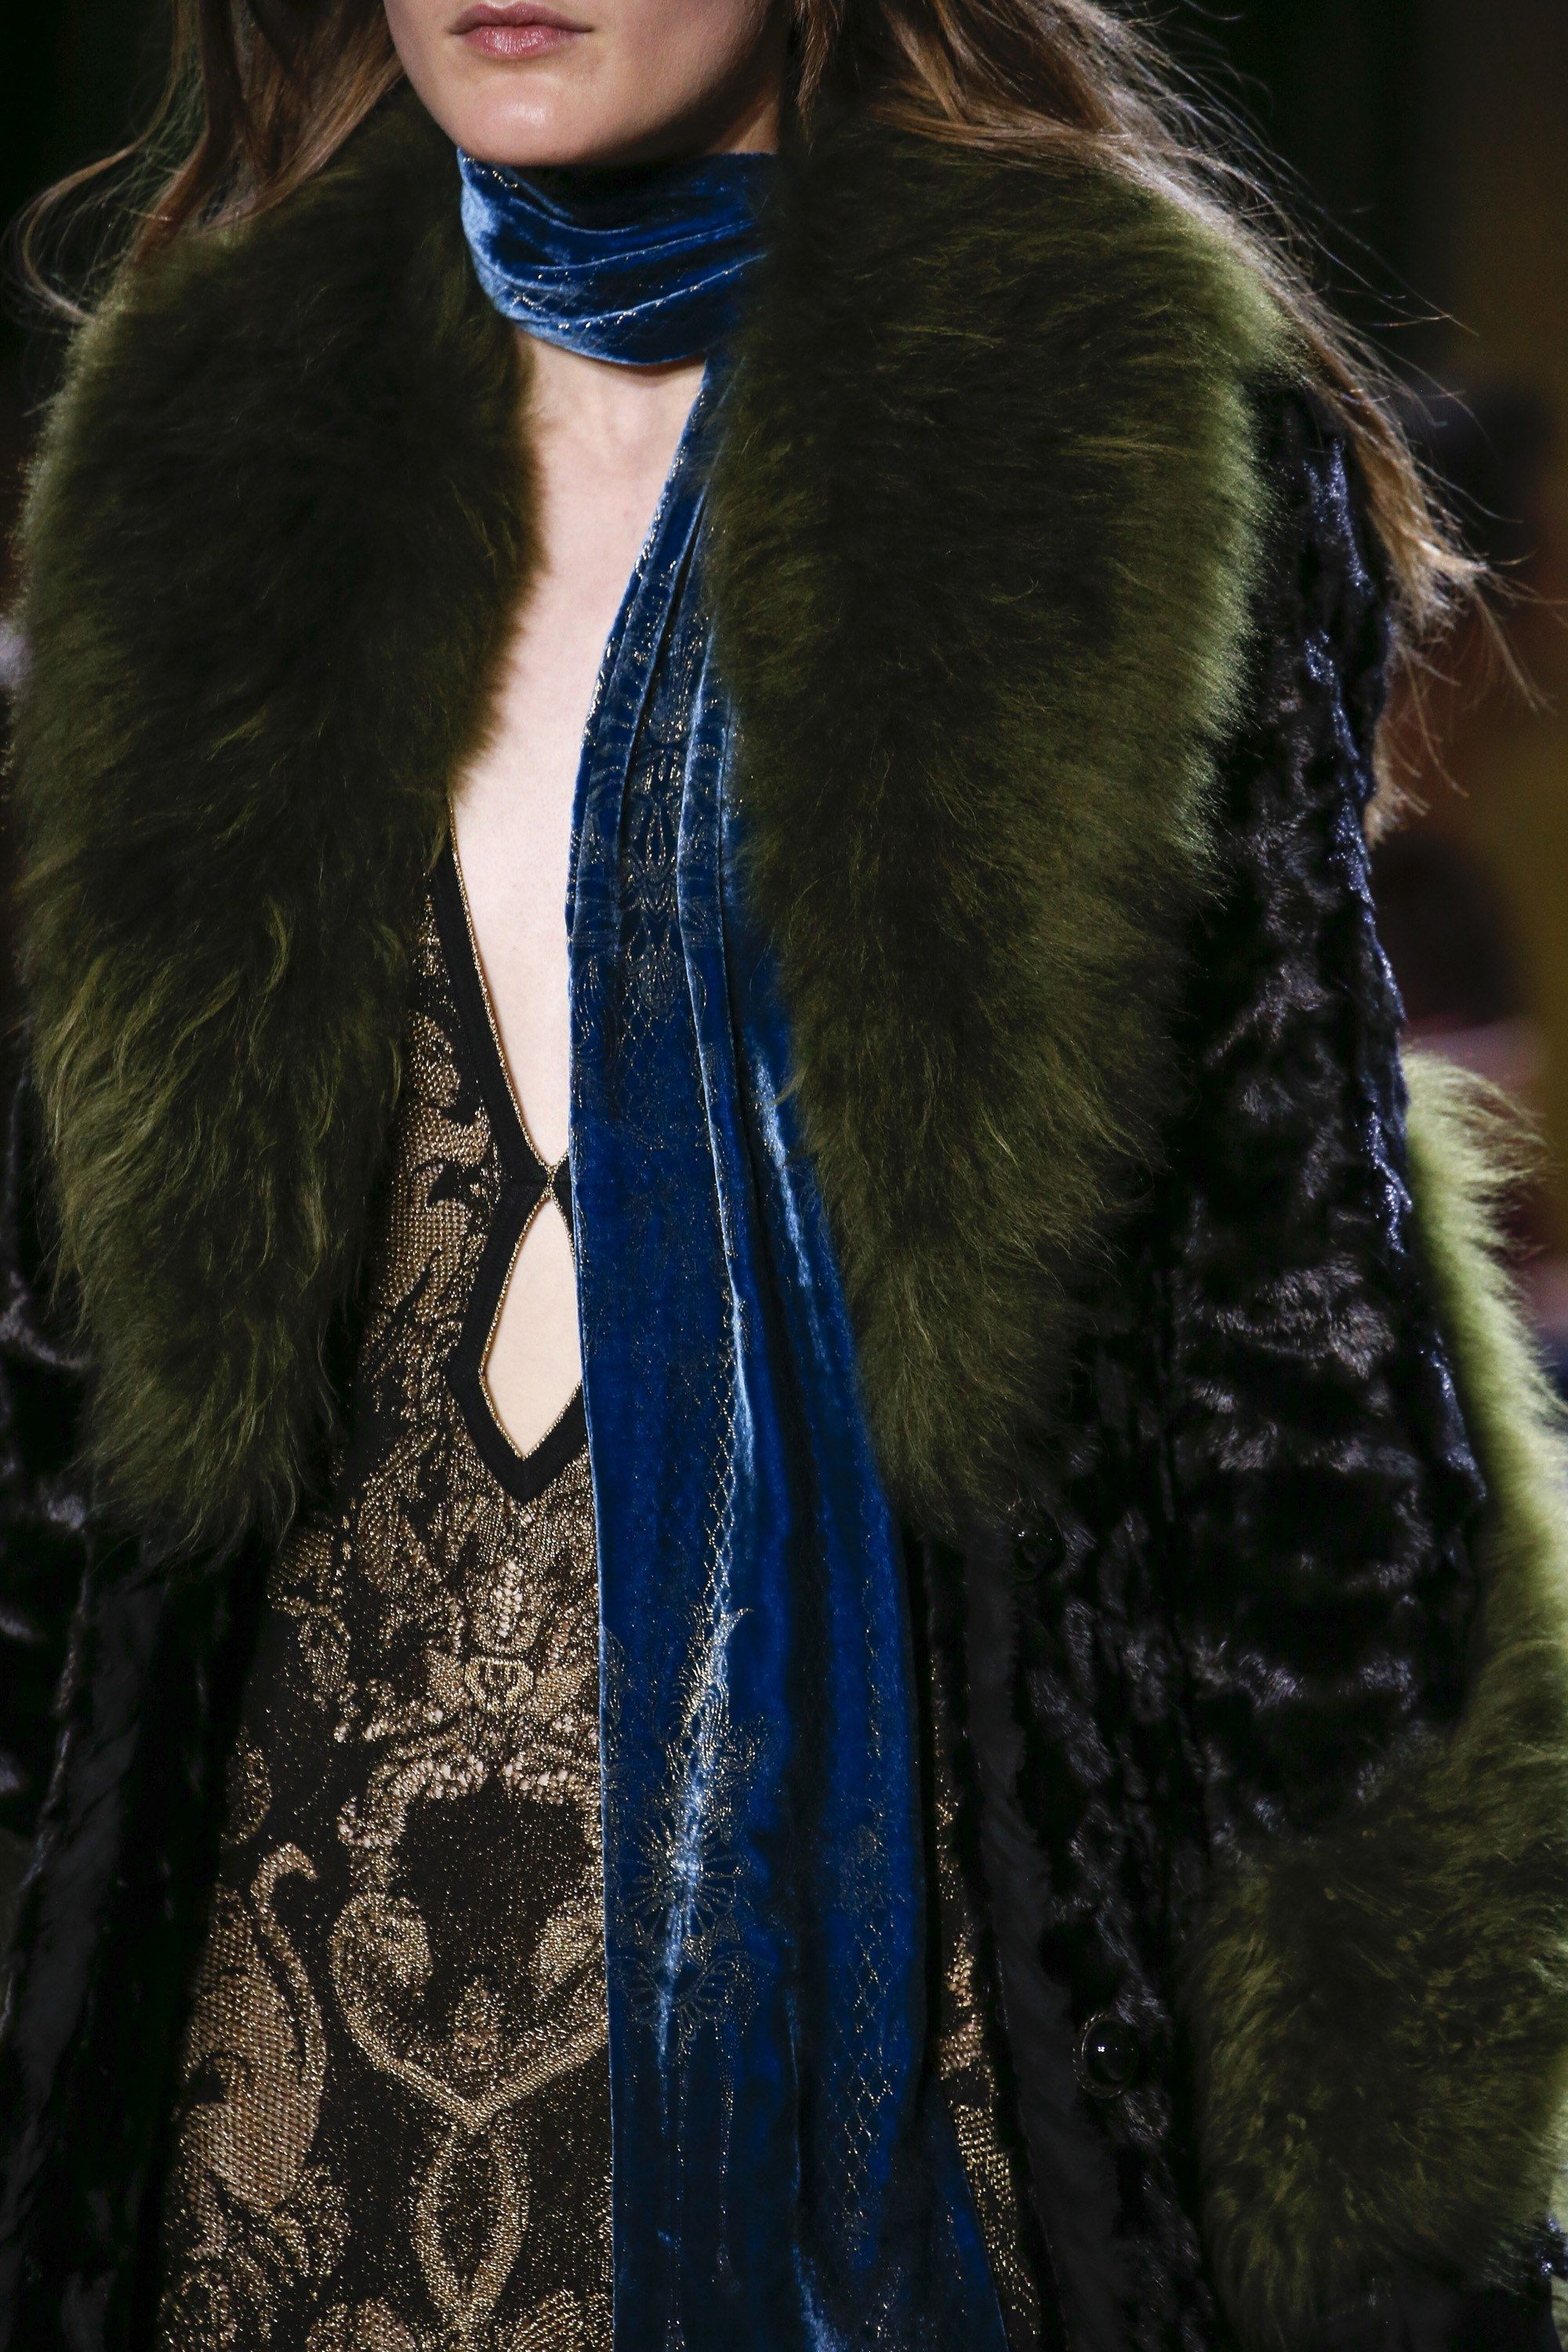 Roberto Cavalli Fall 2016 Ready-to-Wear Accessories Photos - Vogue